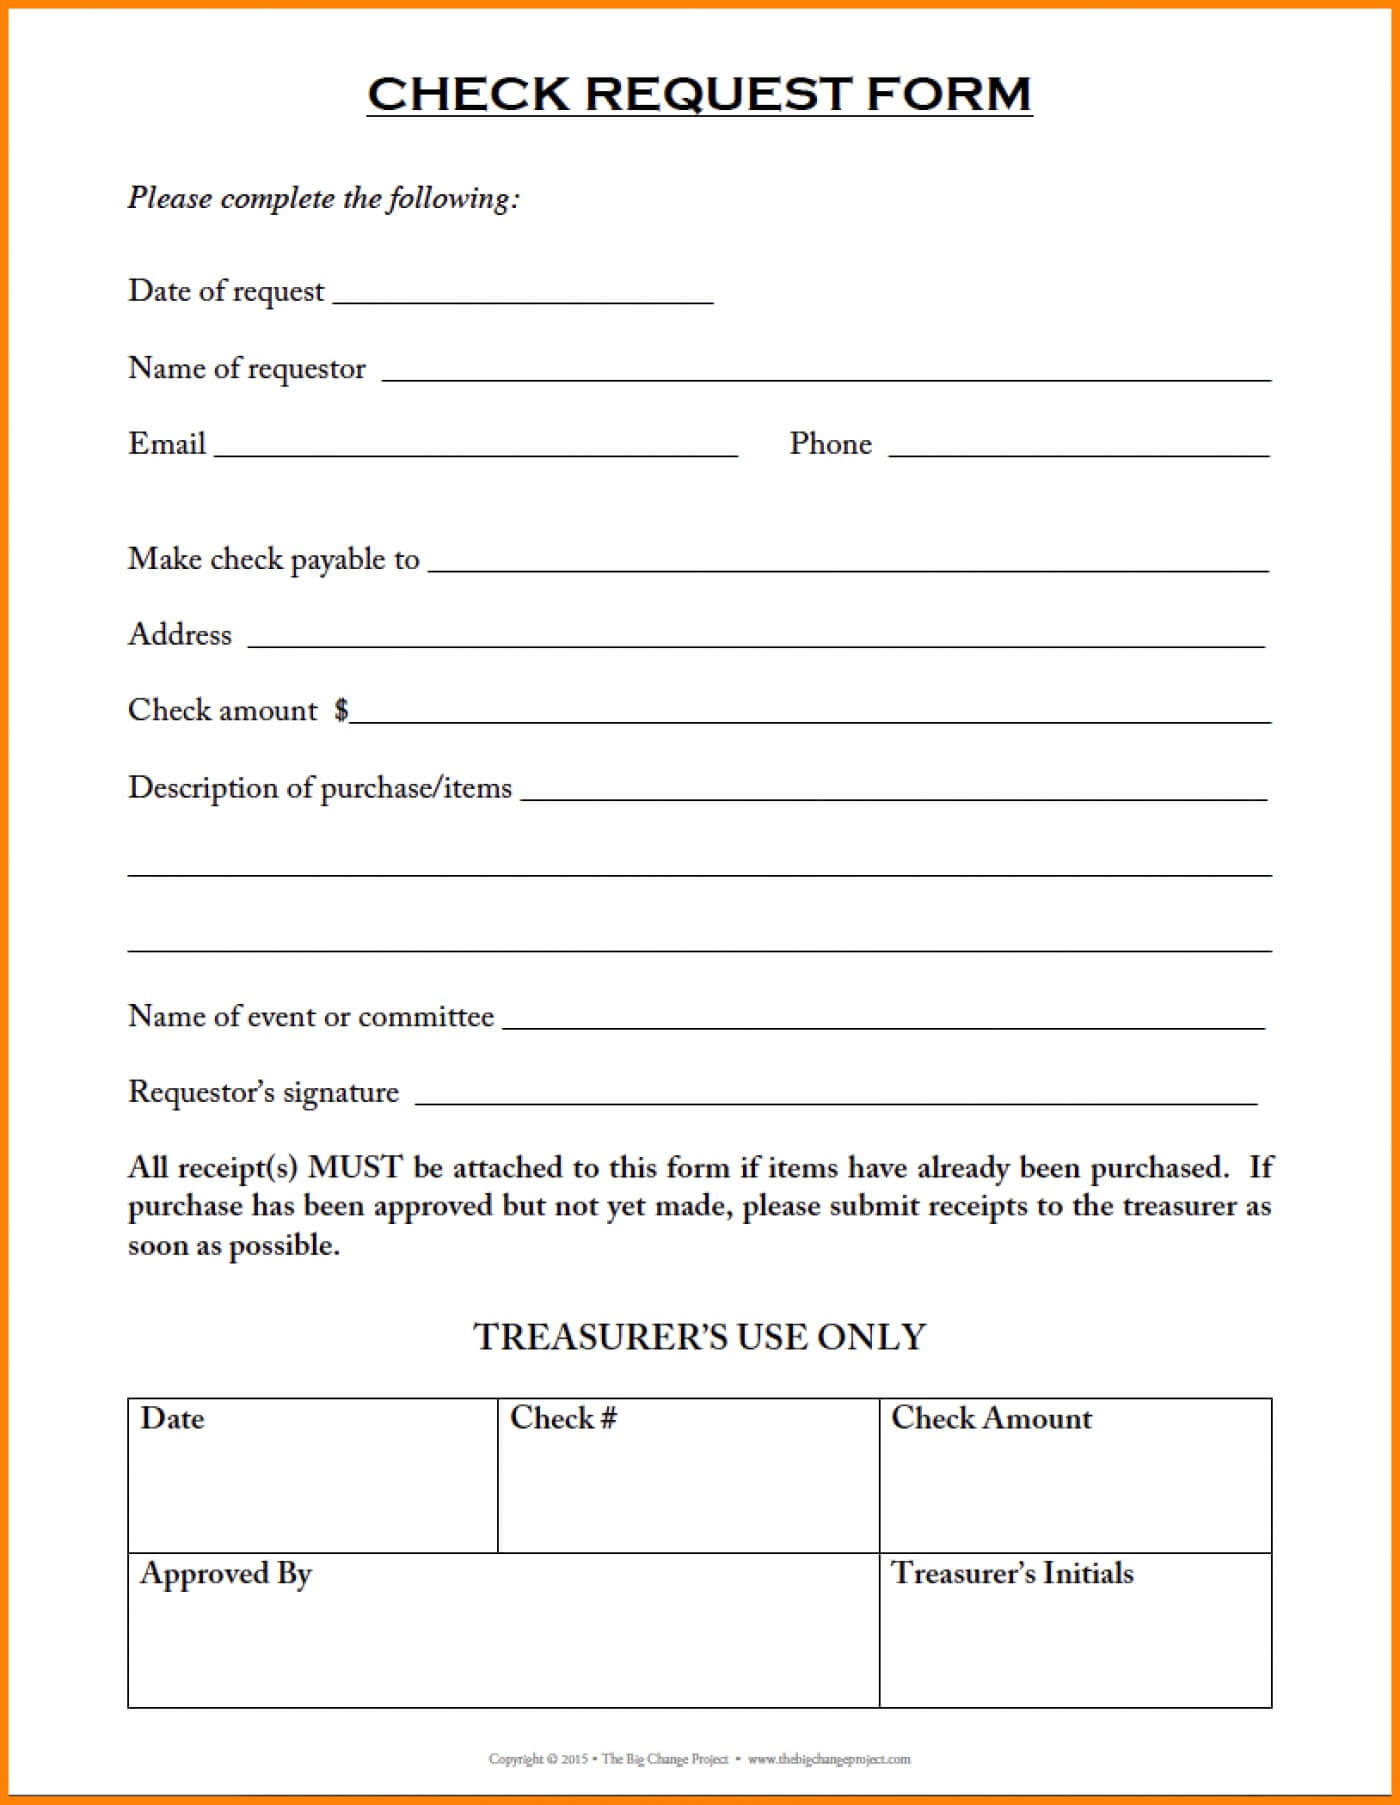 013 Check Request Form Template Excel Free Project Elegant With Regard To Check Request Template Word